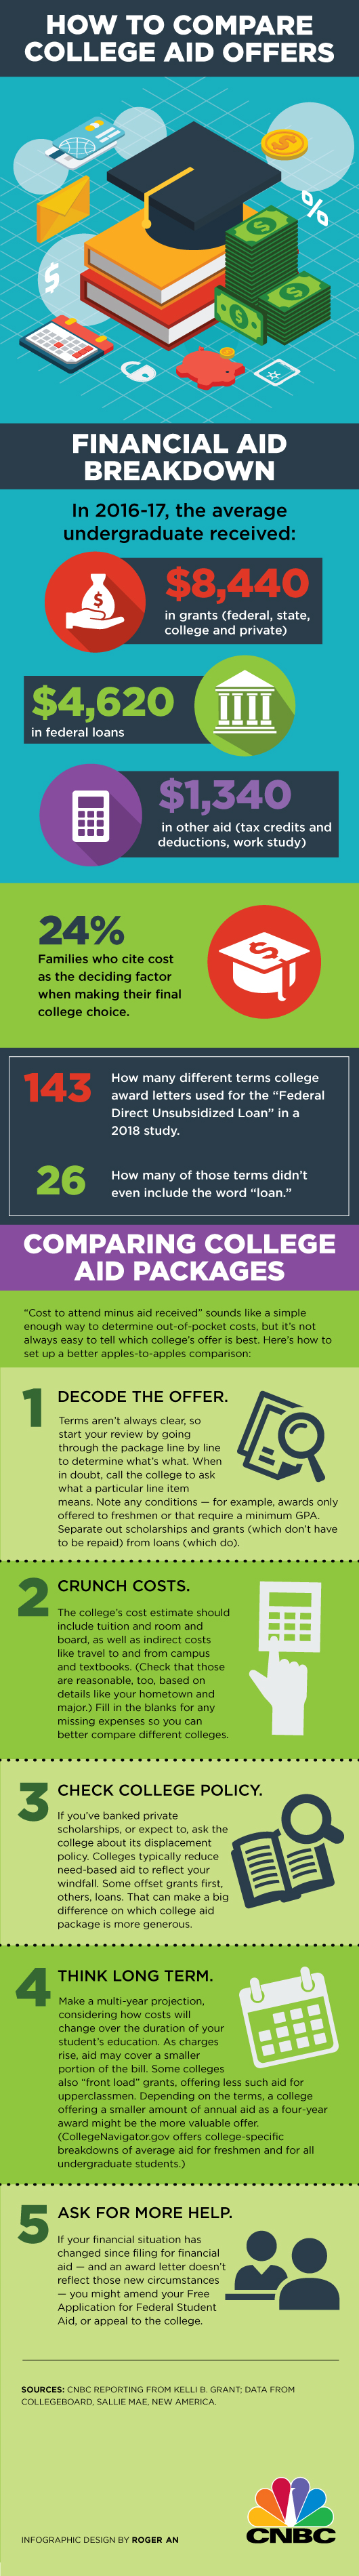 What's The Total Cost Of Attendance After Accounting For Total Aid  Received? Make Sure To Weigh The Tax Impact Of Scholarships And  Fellowships, Too,